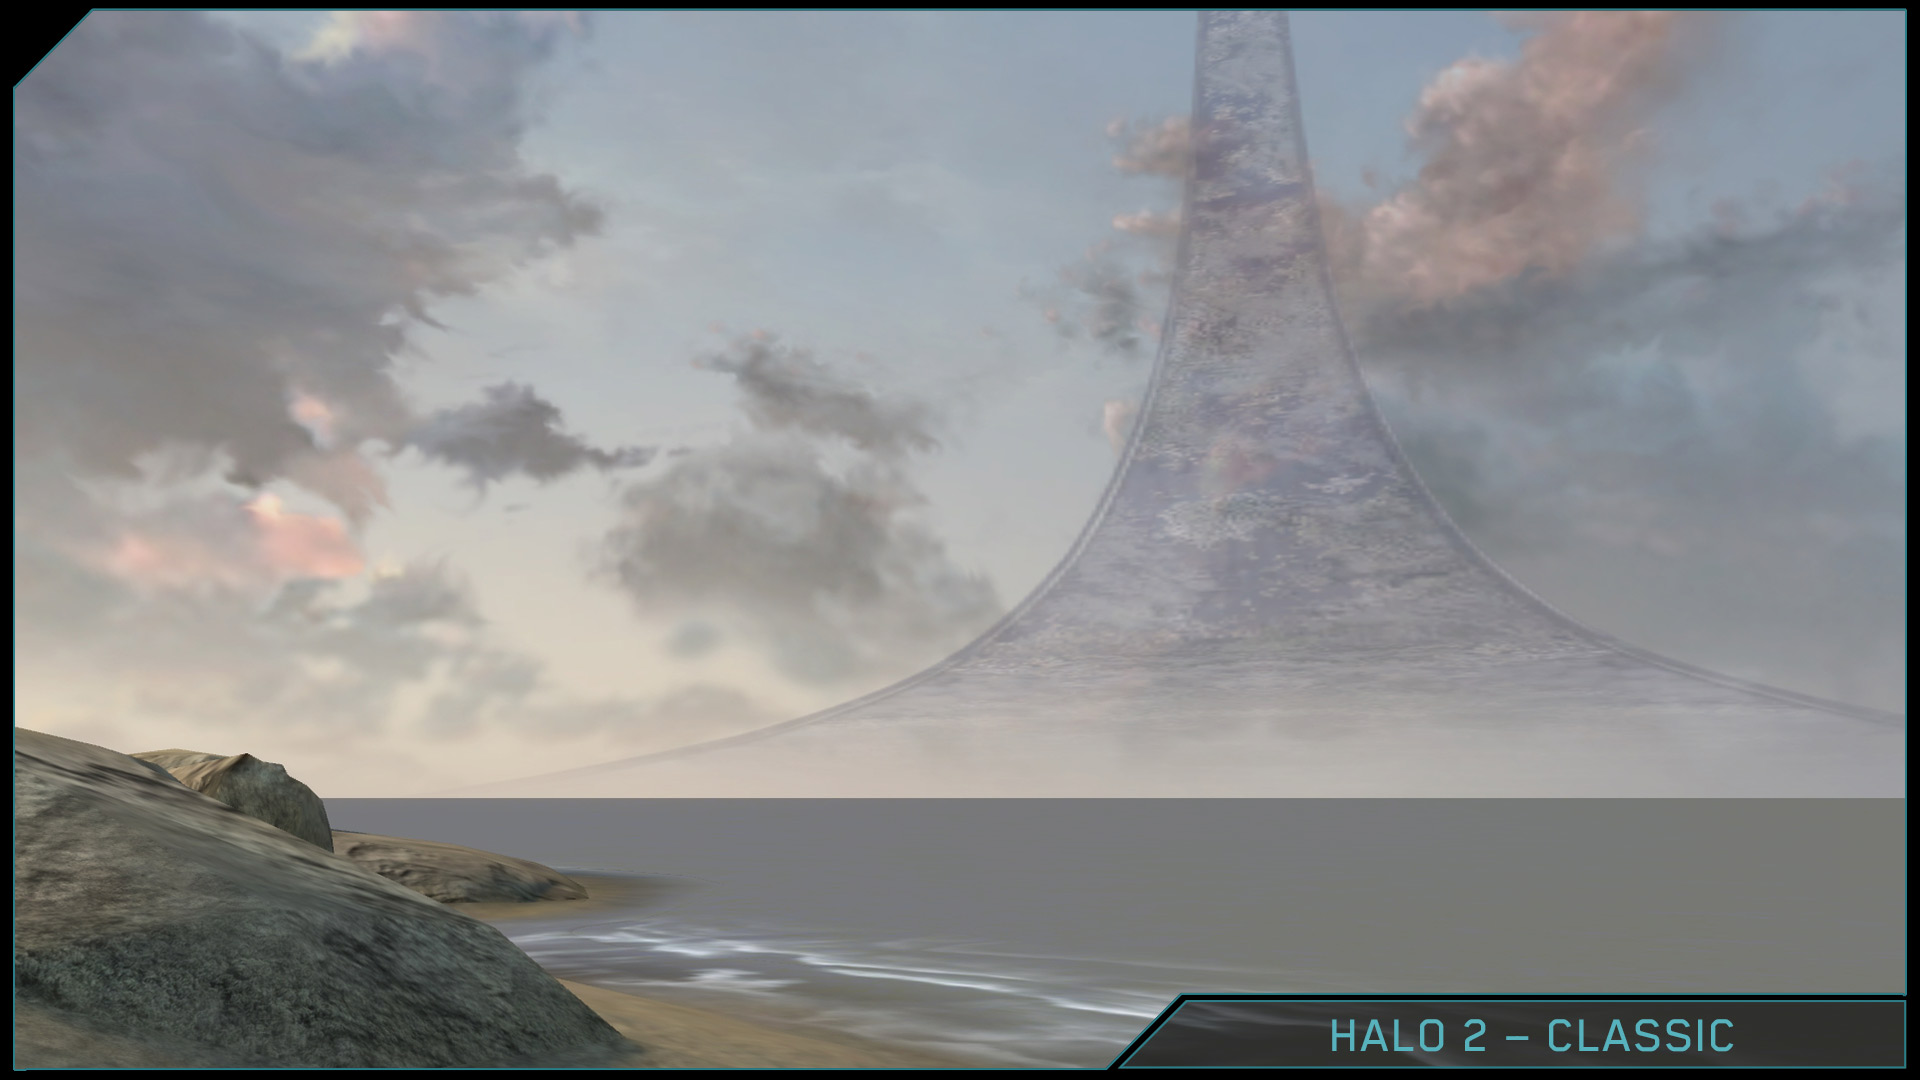 halo-the-master-chief-collection-relic-establishing-comparison-classic-23caf2a02eef469796734d7769aad6a4